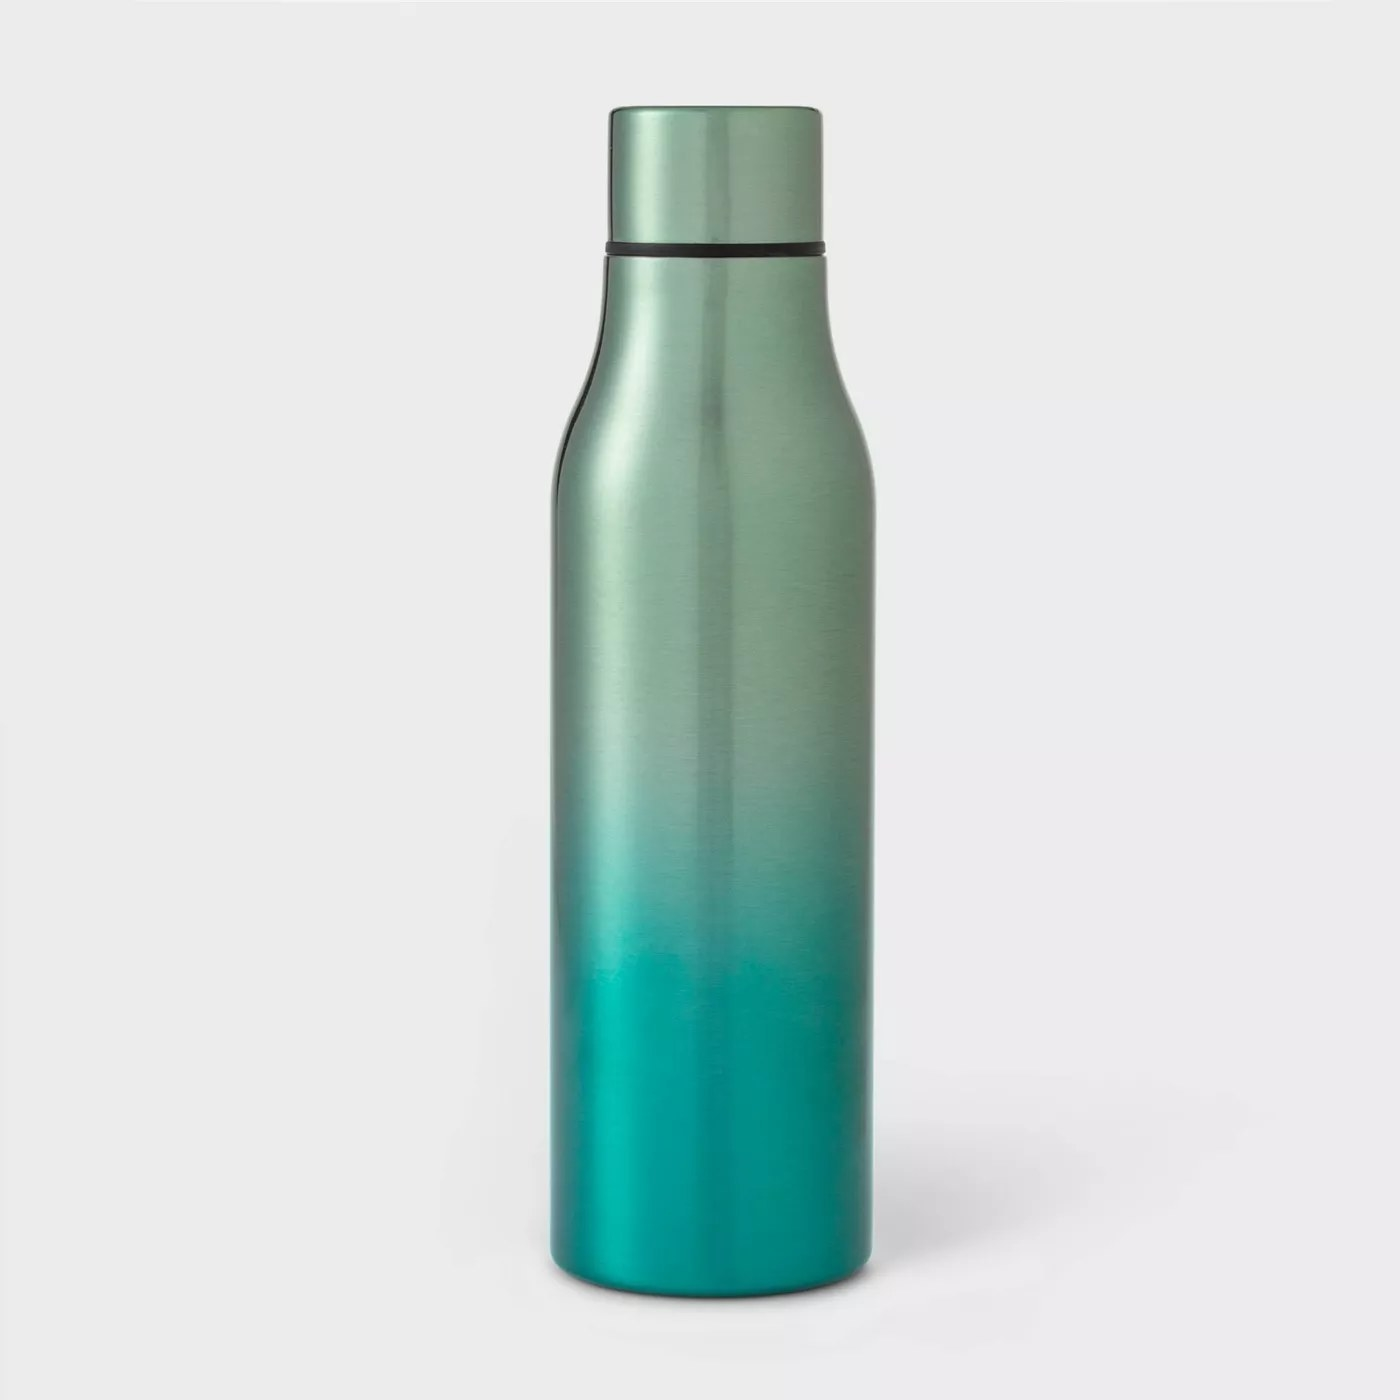 The green ombre water bottle